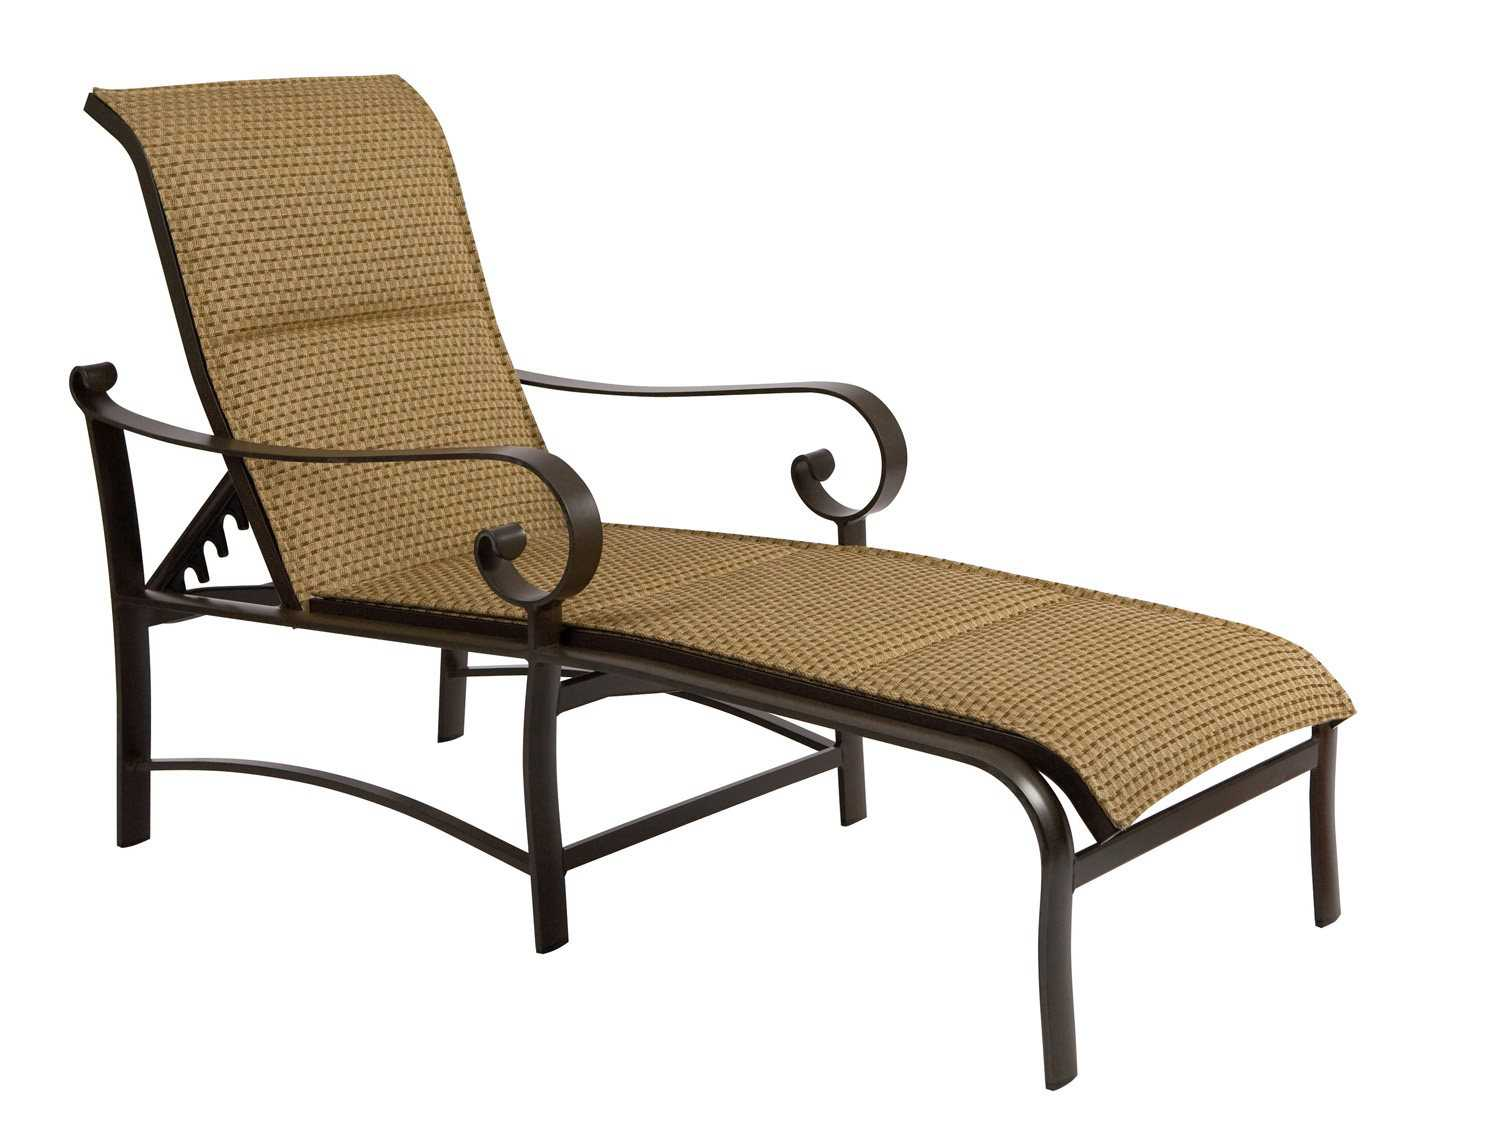 Woodard belden padded sling aluminum adjustable chaise for Aluminum chaise lounges